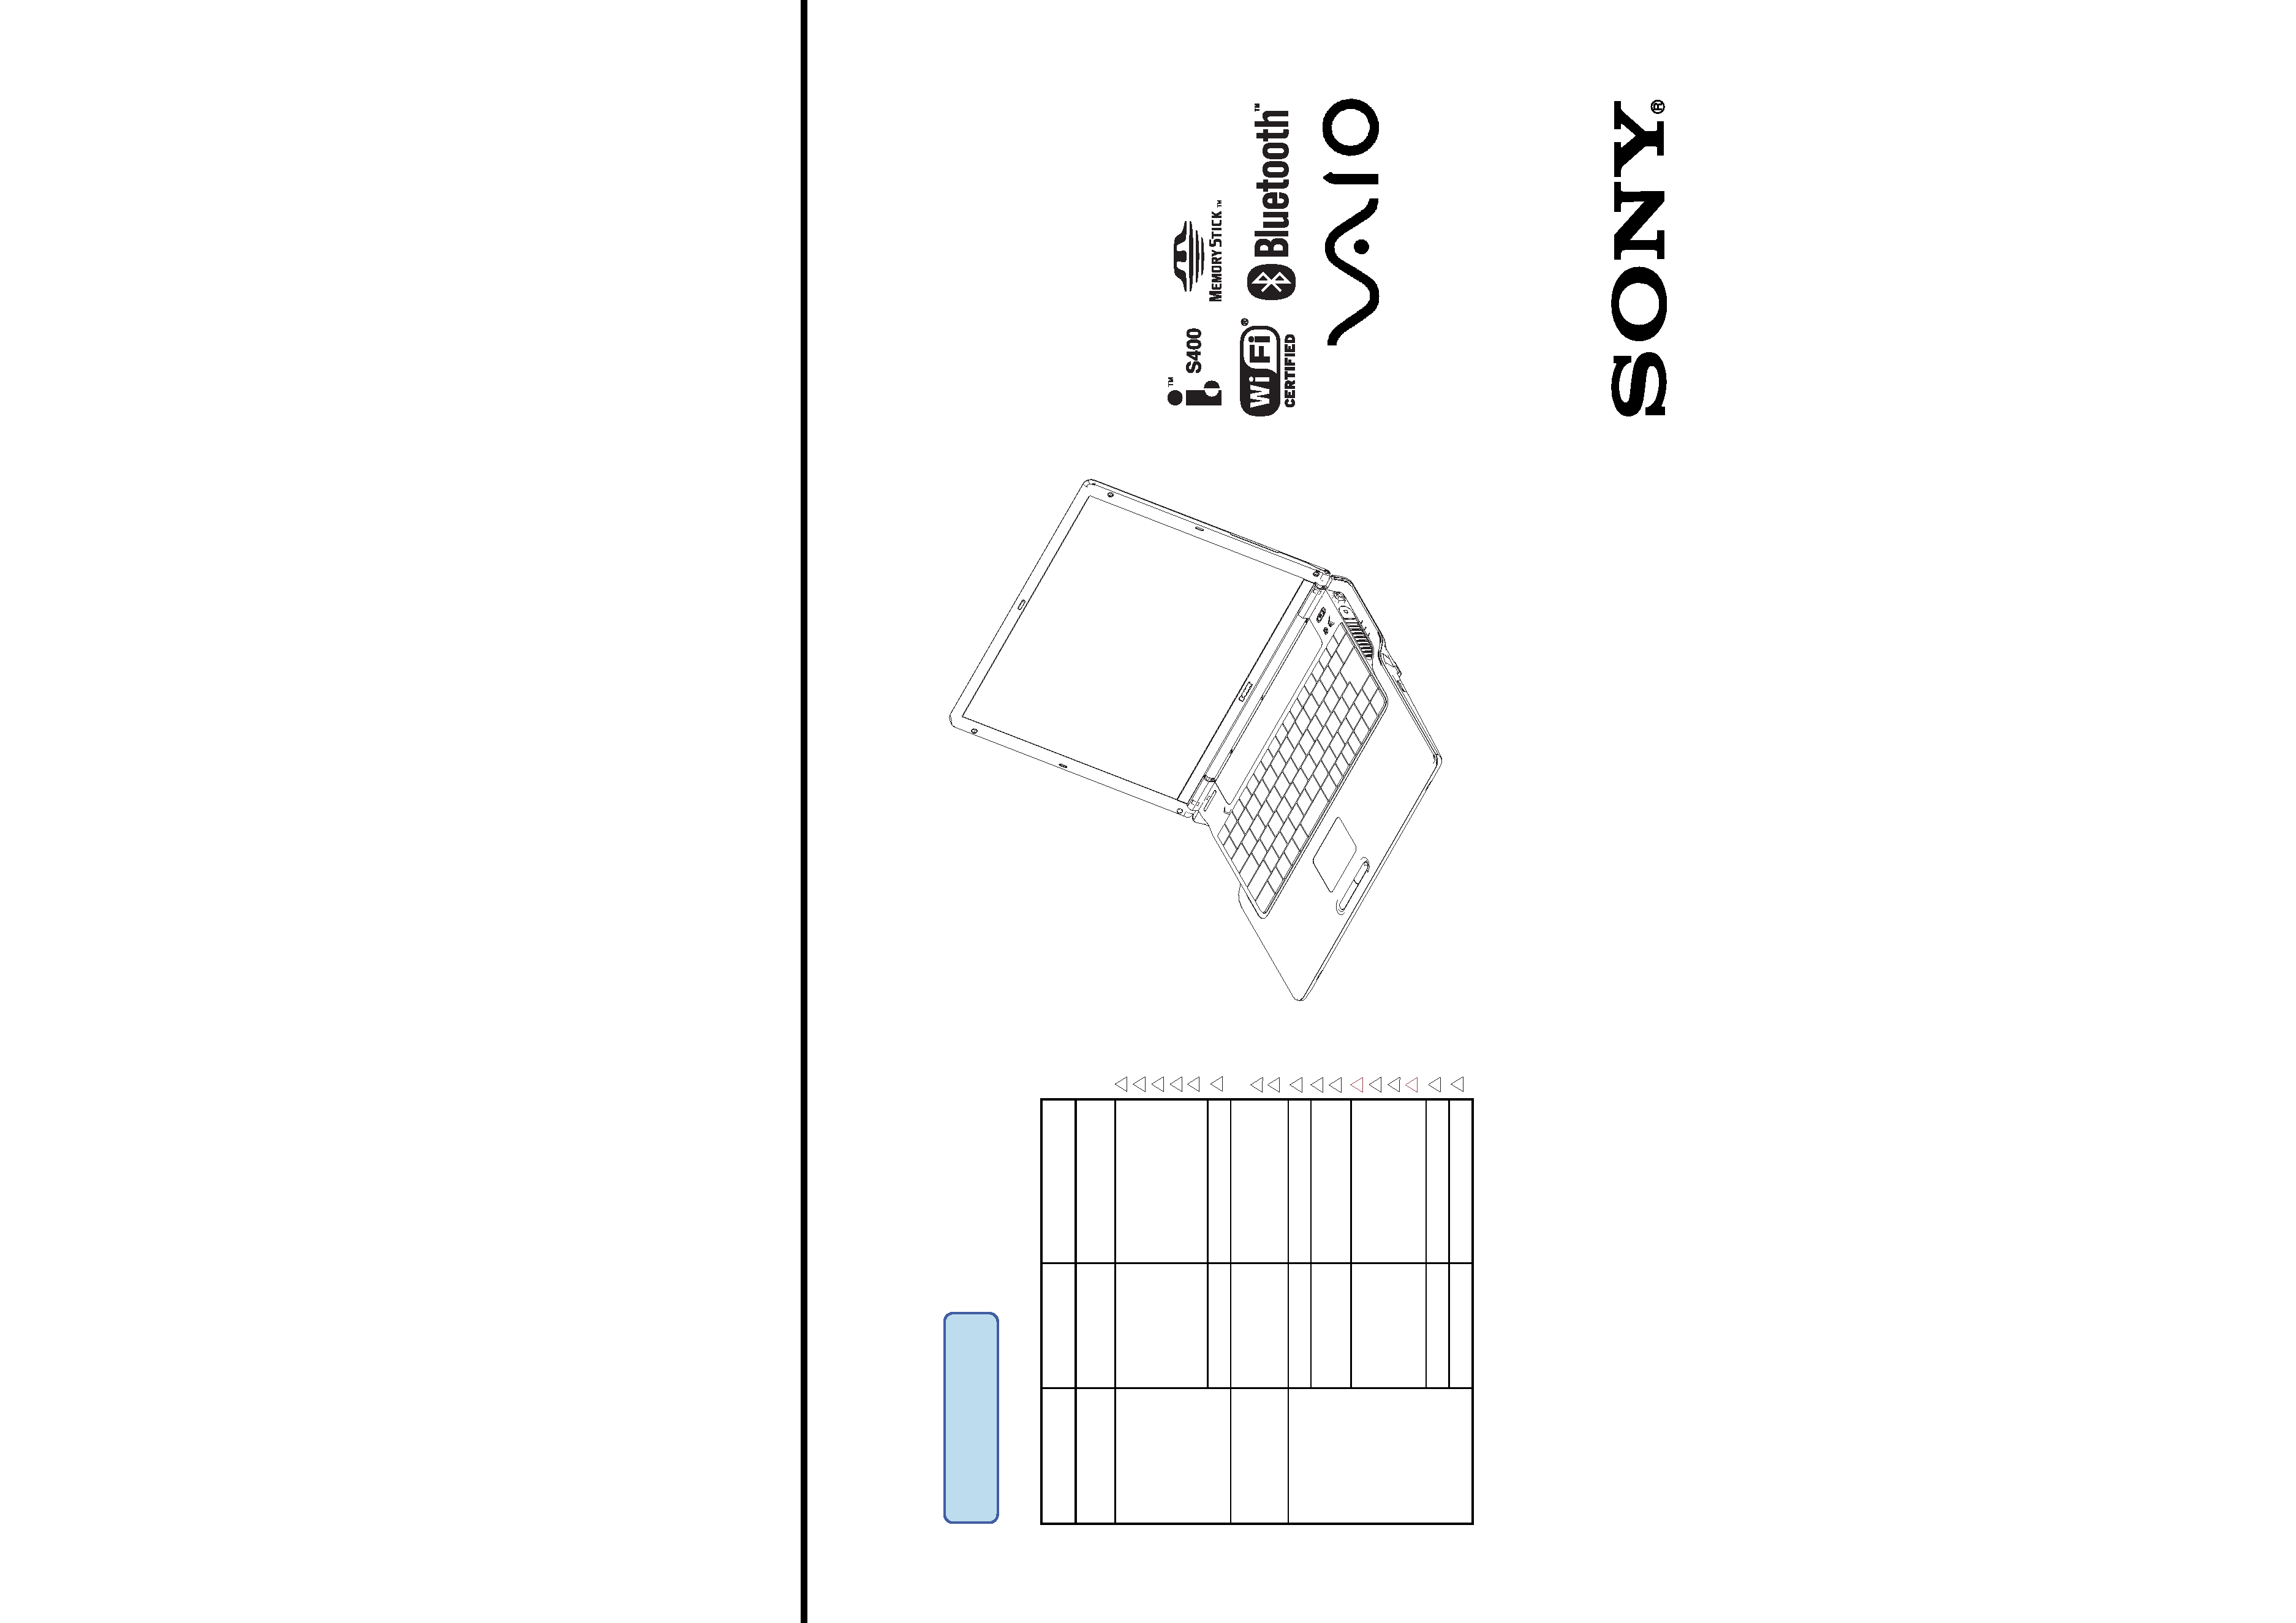 Sony Vaio Parts Diagram Pcgz1wa Service Manual Immediate Download Background Image